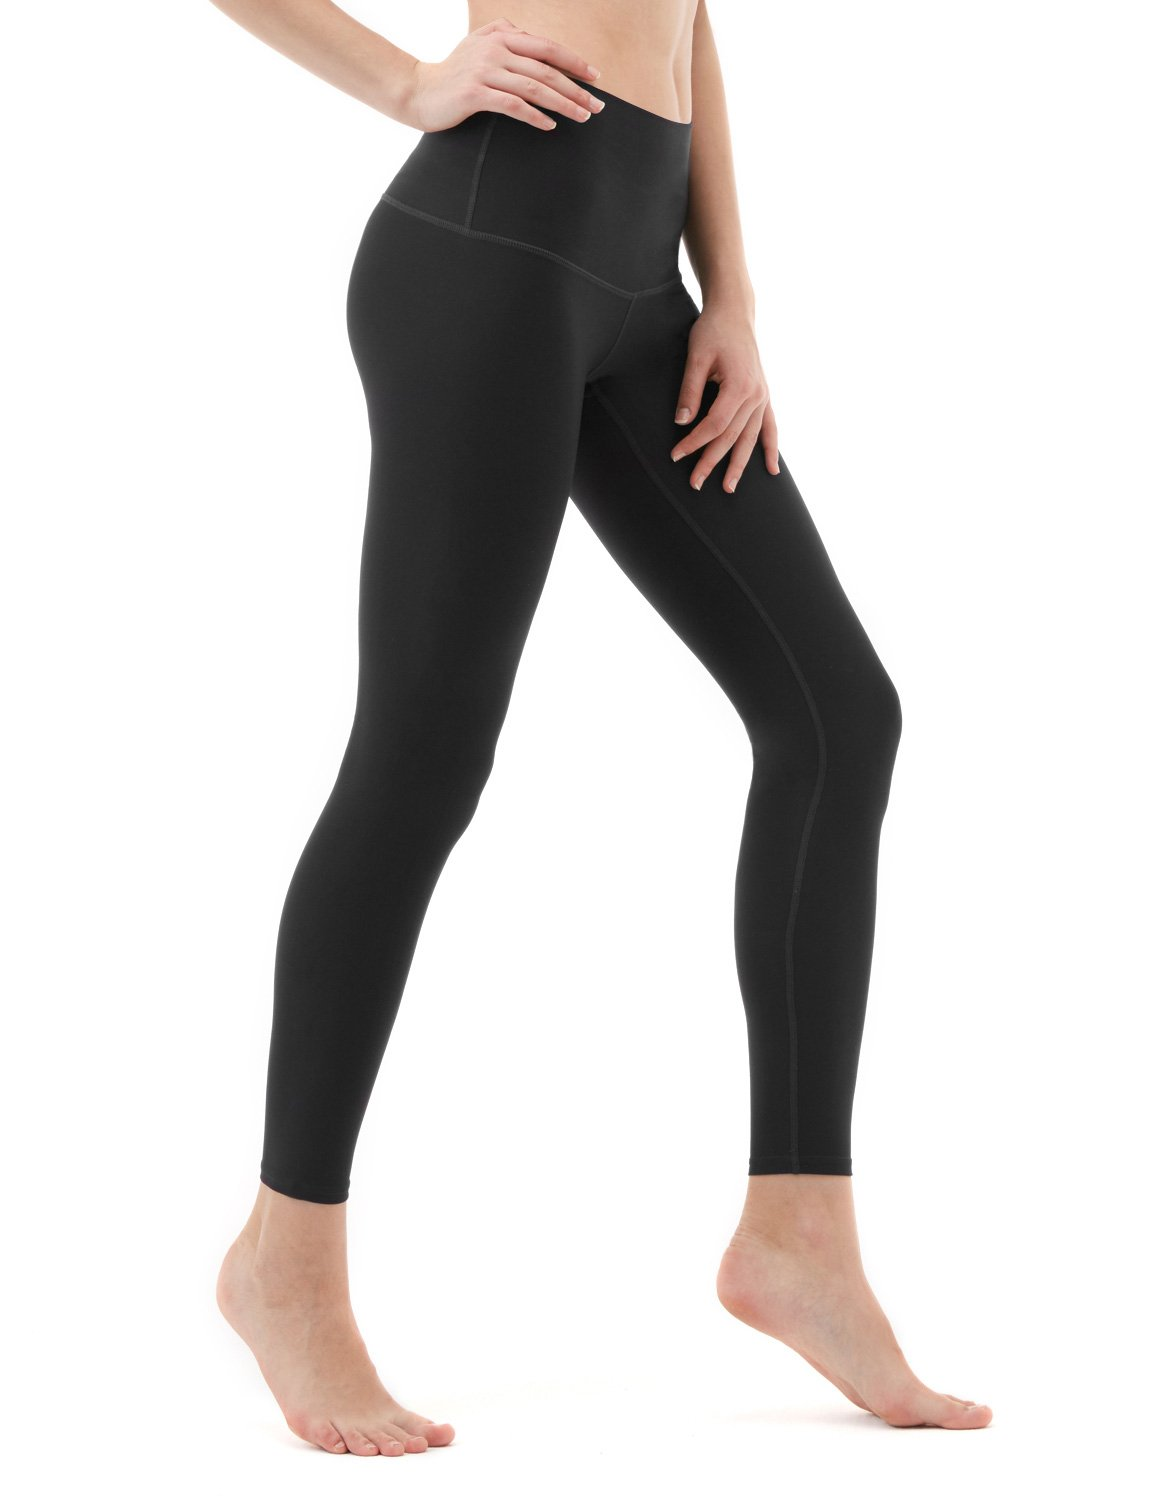 Tesla TM-FYP52-BLK_Medium Yoga Pants High-Waist Tummy Control w Hidden Pocket FYP52